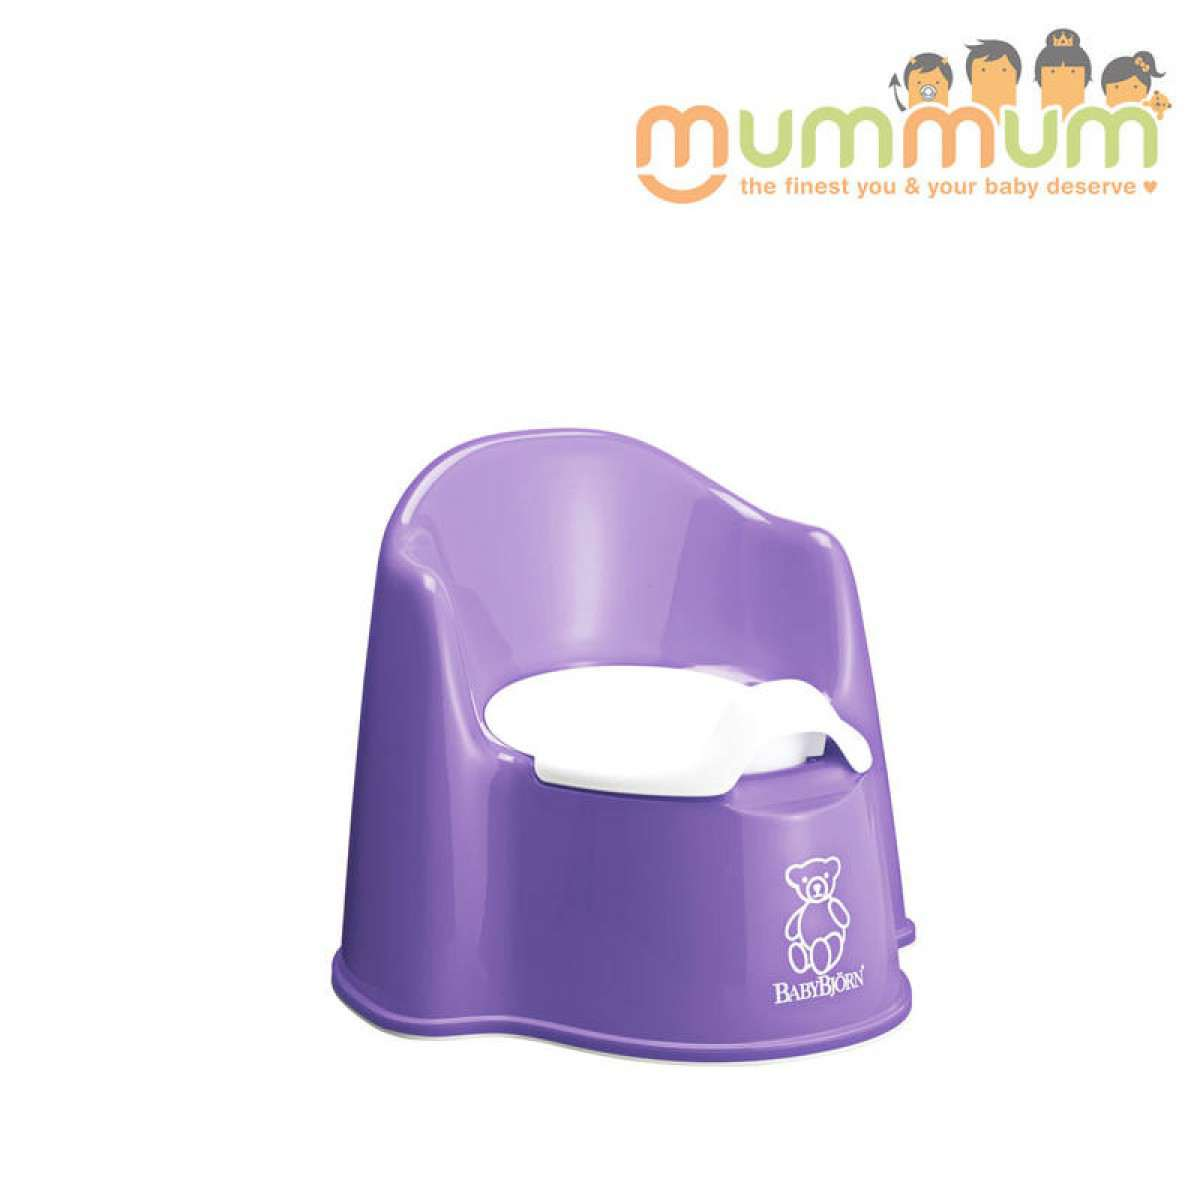 3f04637aece Availability  In Stock  Product Code  Babybjorn potty chair purple  Brand  Baby  Bjorn